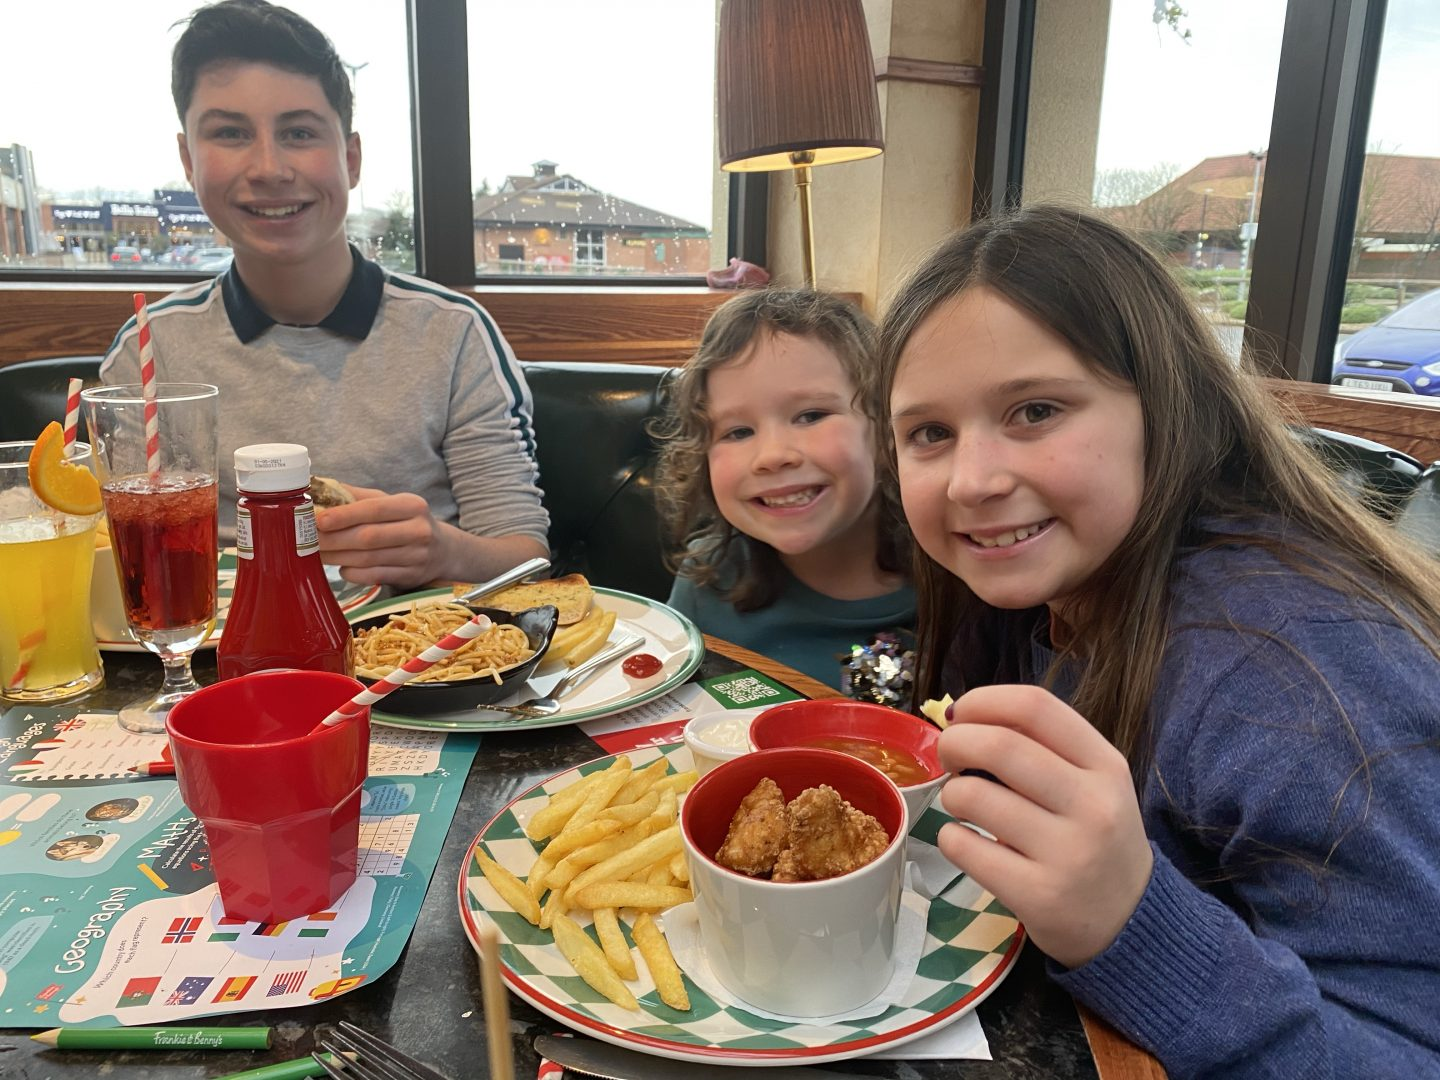 4 children smiling in a diner at the start of the Christmas holidays